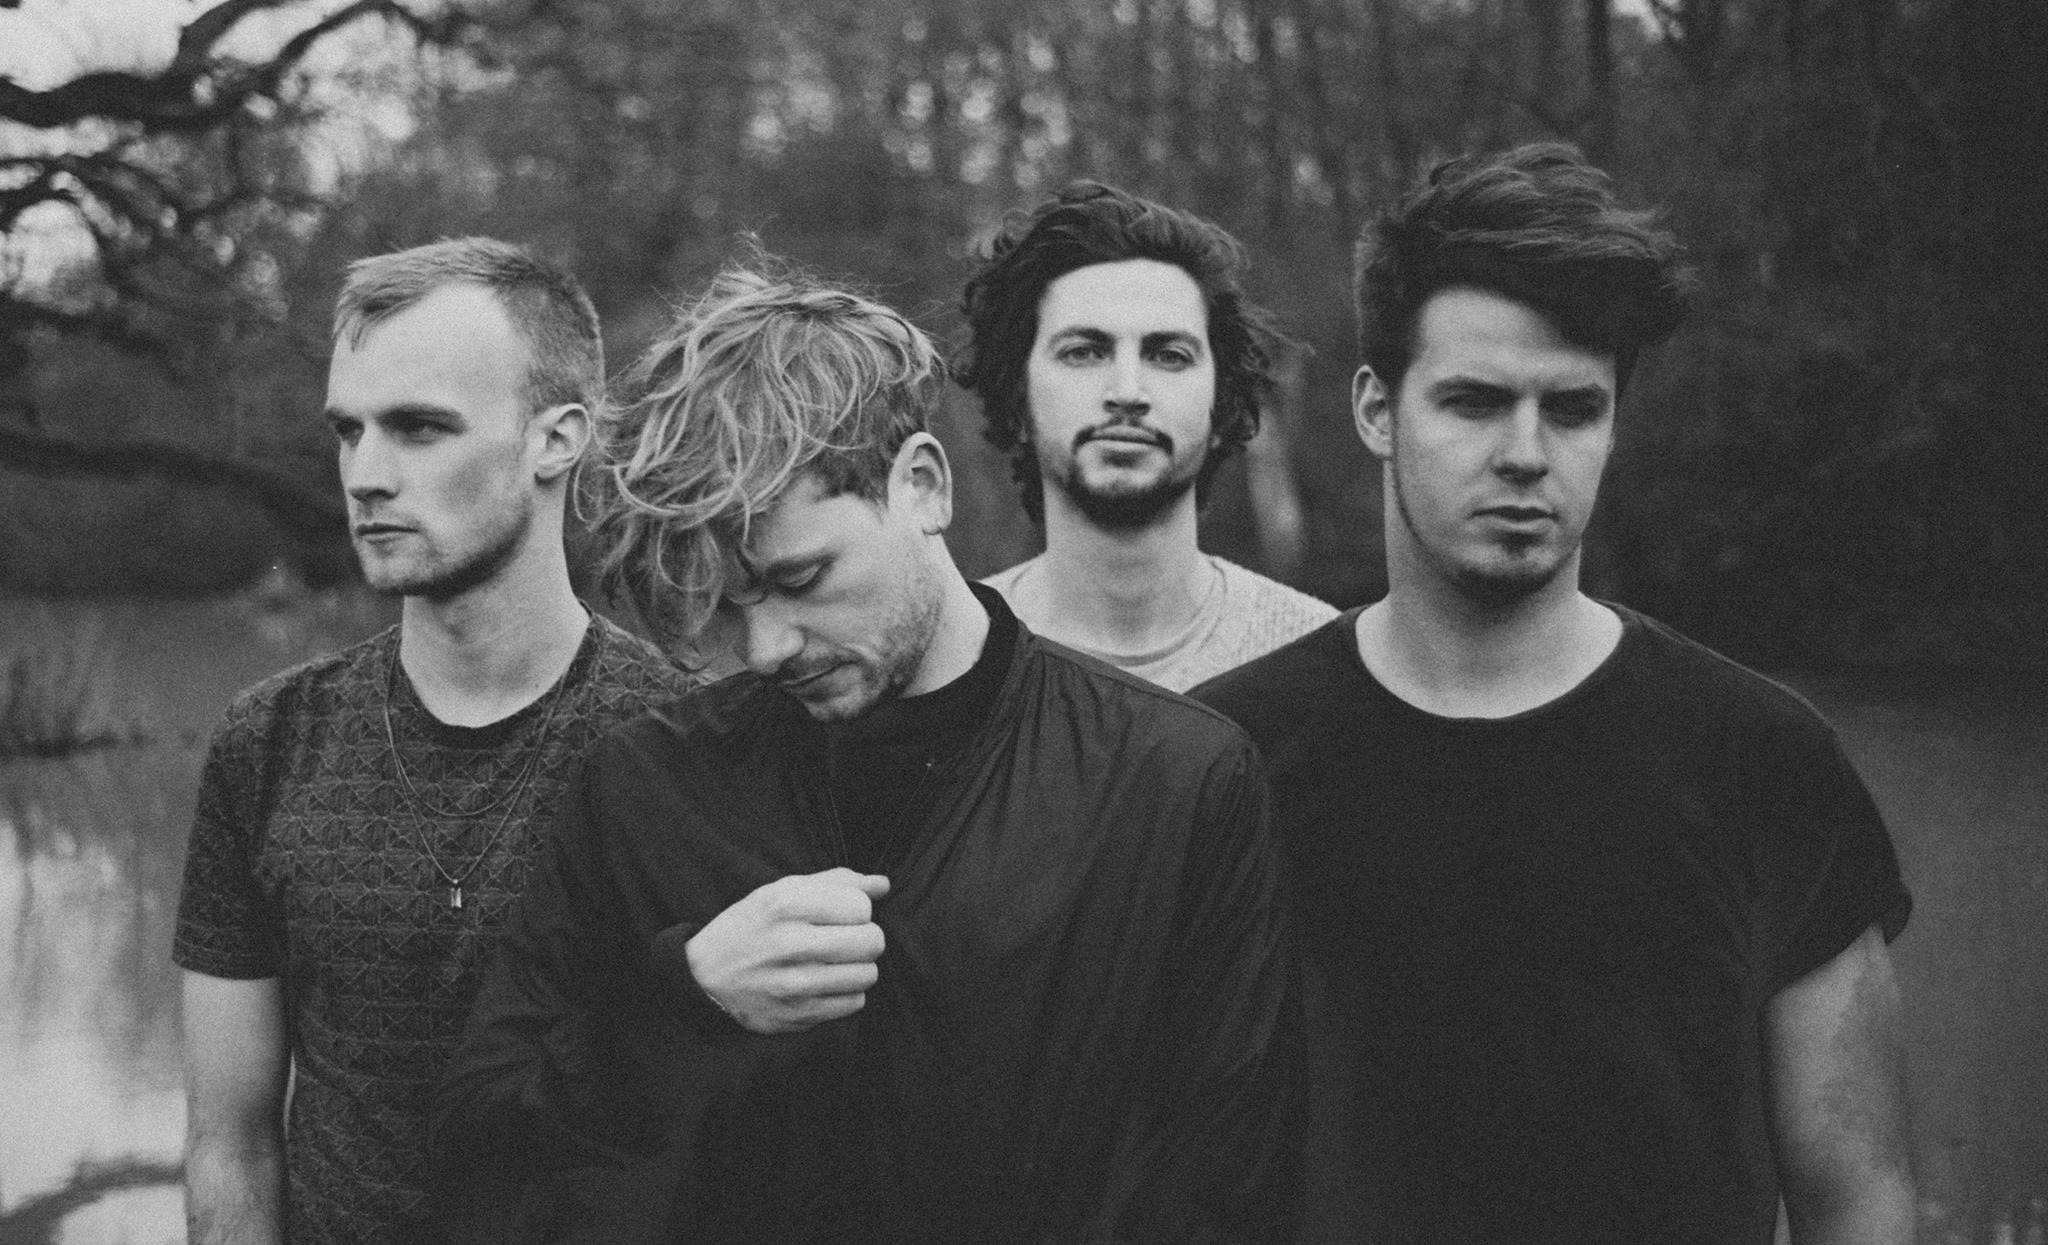 Track of the Day – THE KING'S PARADE 'Haze'